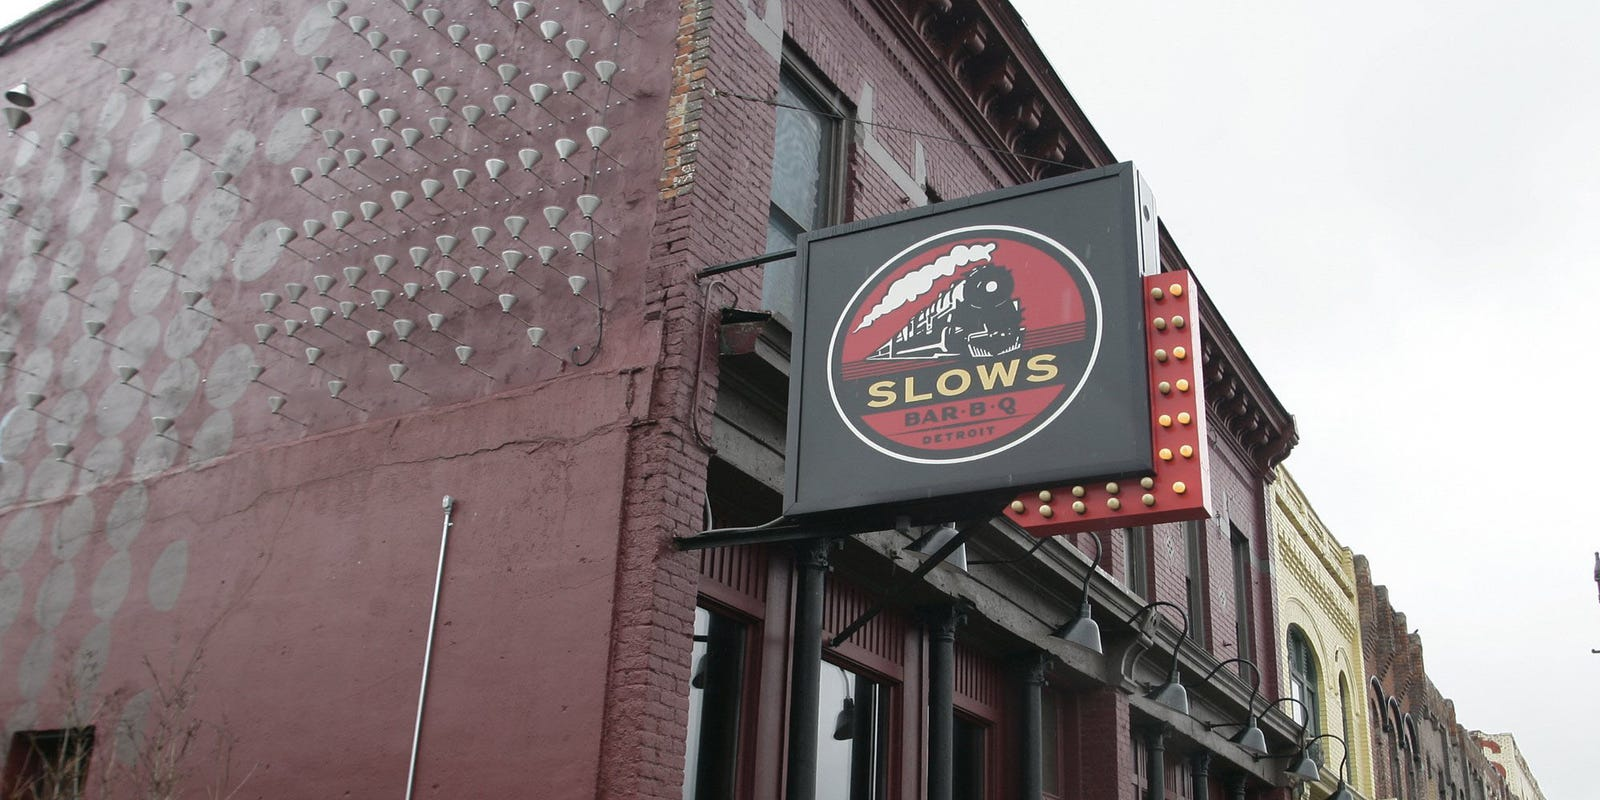 Slows Bar BQ to pause indoor dining as infections surge, groups debate recommendations